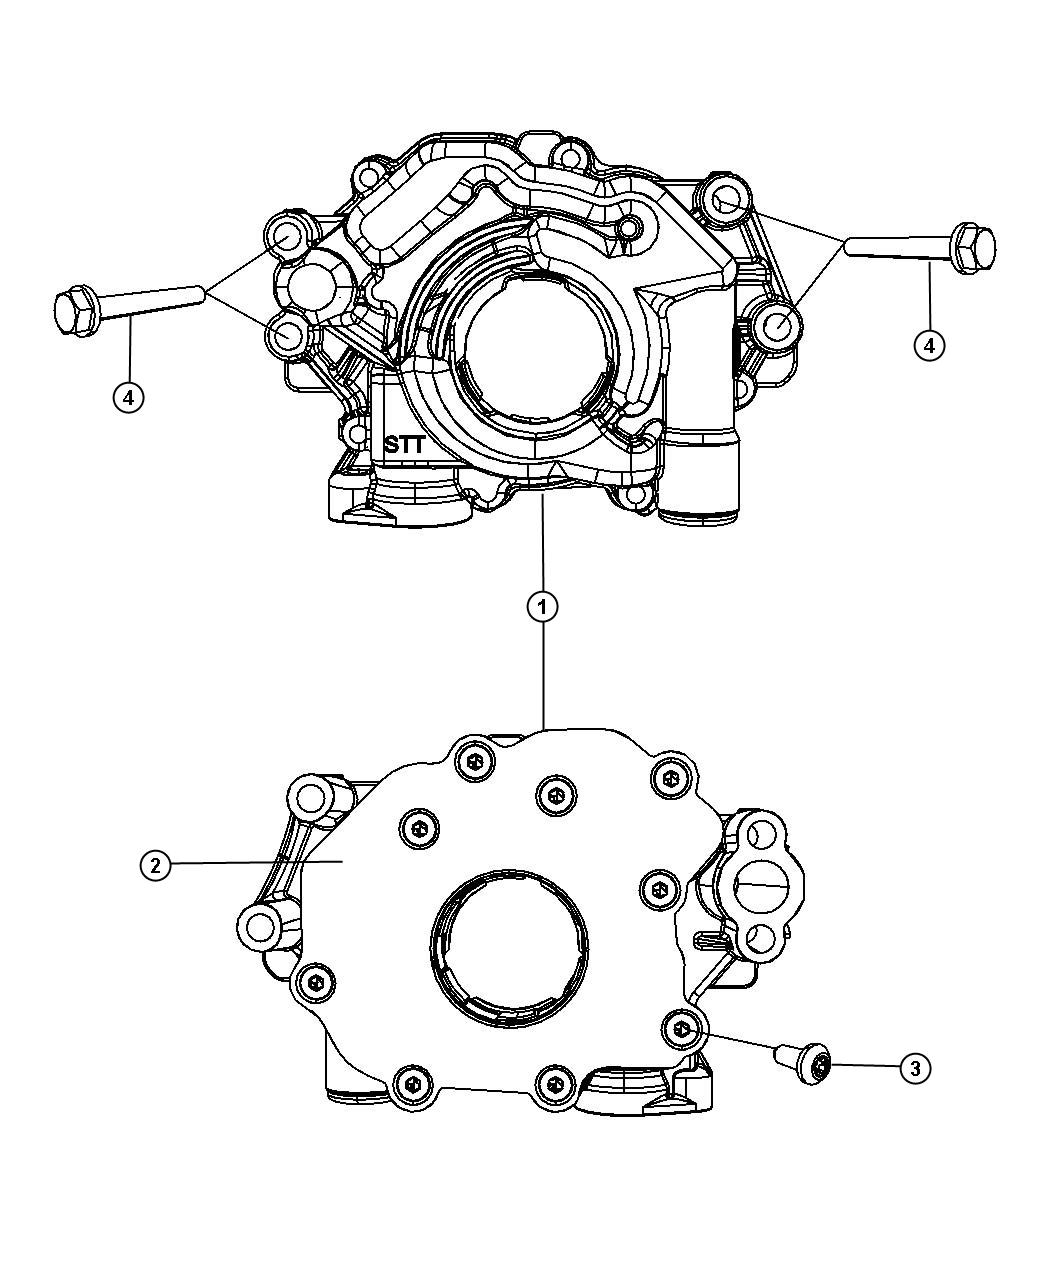 Chrysler 300 Used For Bolt And Coned Washer Hex Head